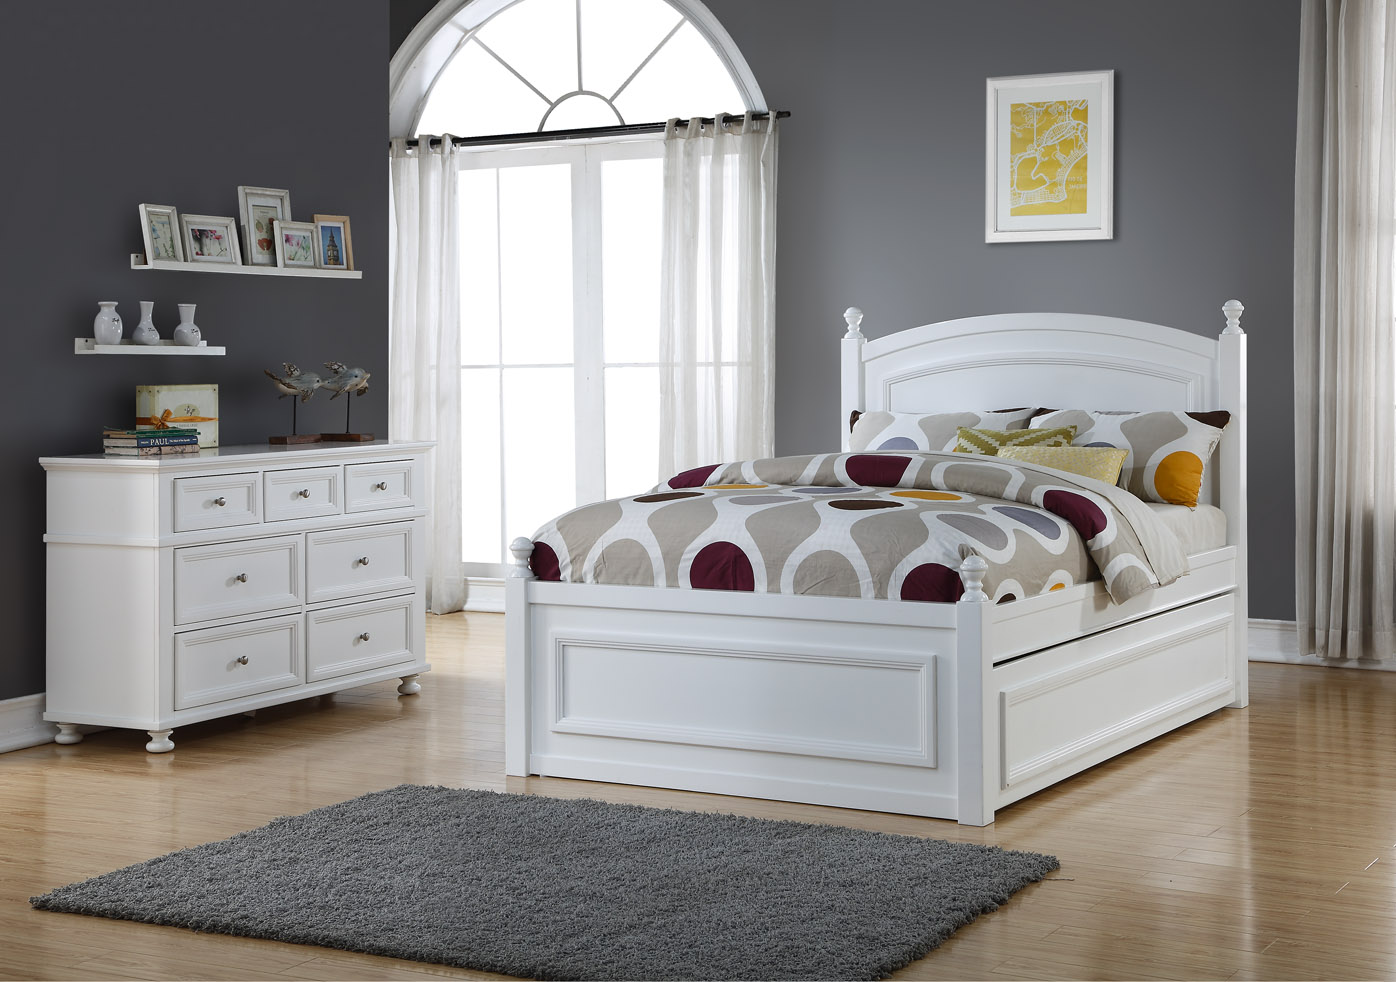 LR AVA Double Bed and Dresser.jpg